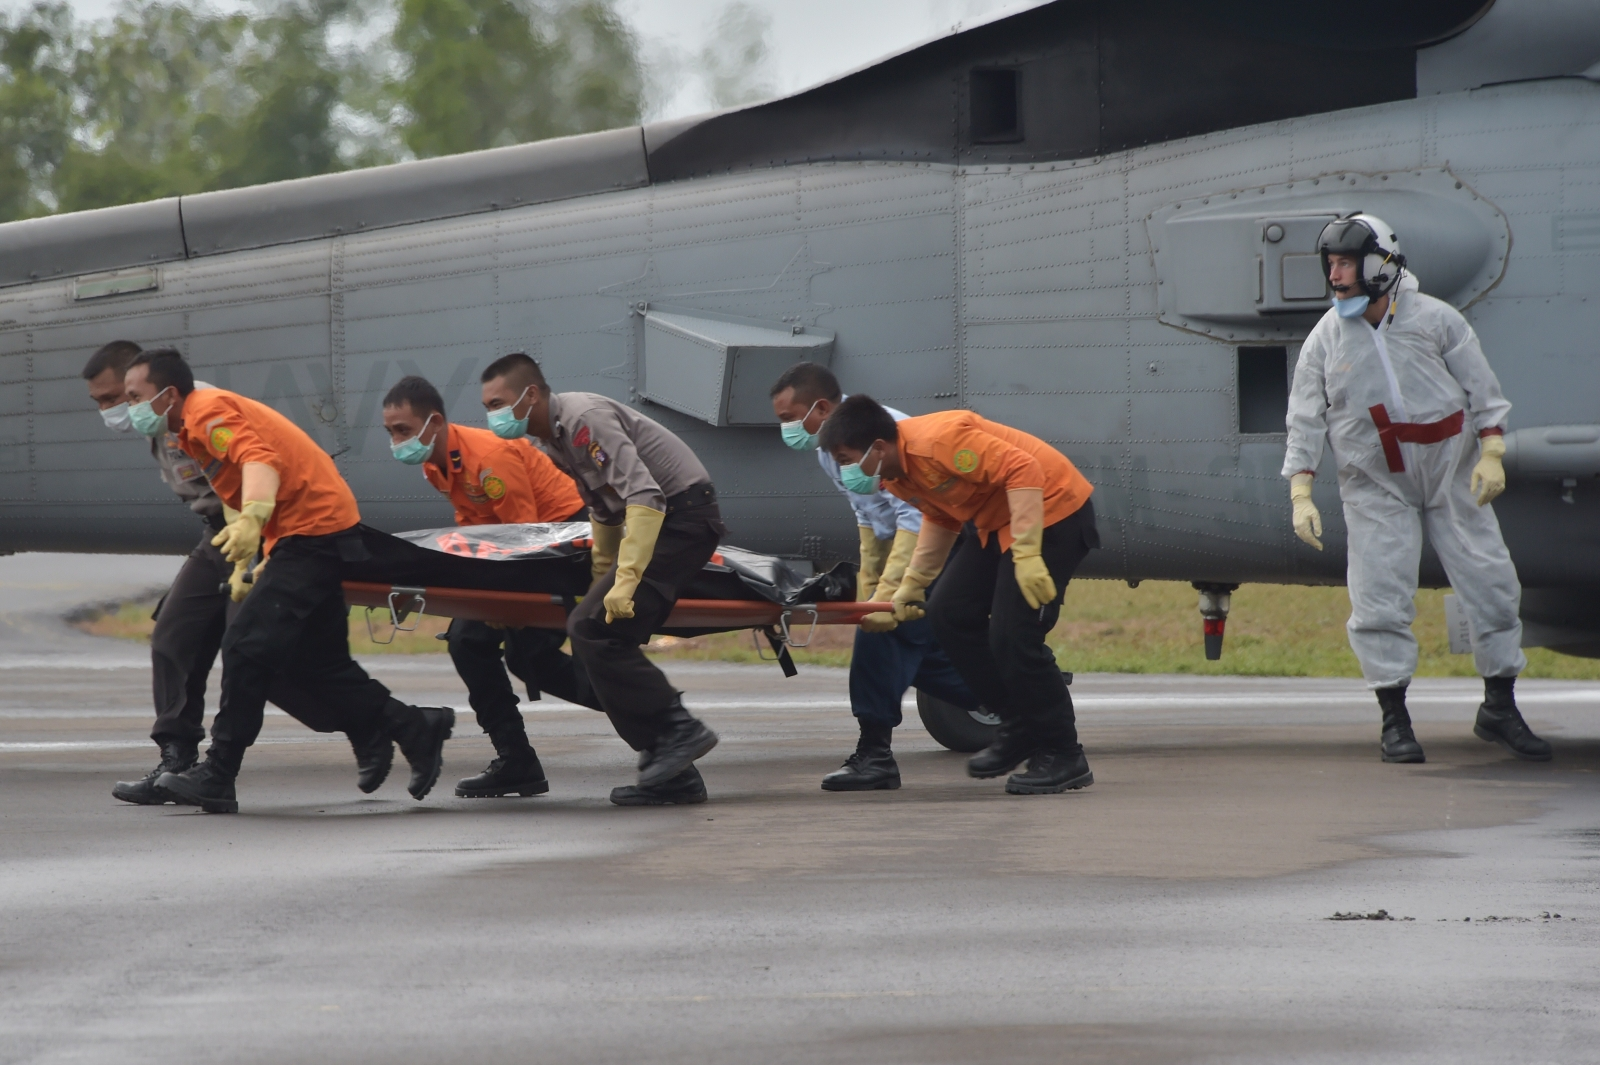 Members of an Indonesian search and rescue team collect a bag containing a victims body of AirAsia flight 8501, from a US navy helicopter Seahawk. (ADEK BERRY/AFP/Getty Images)